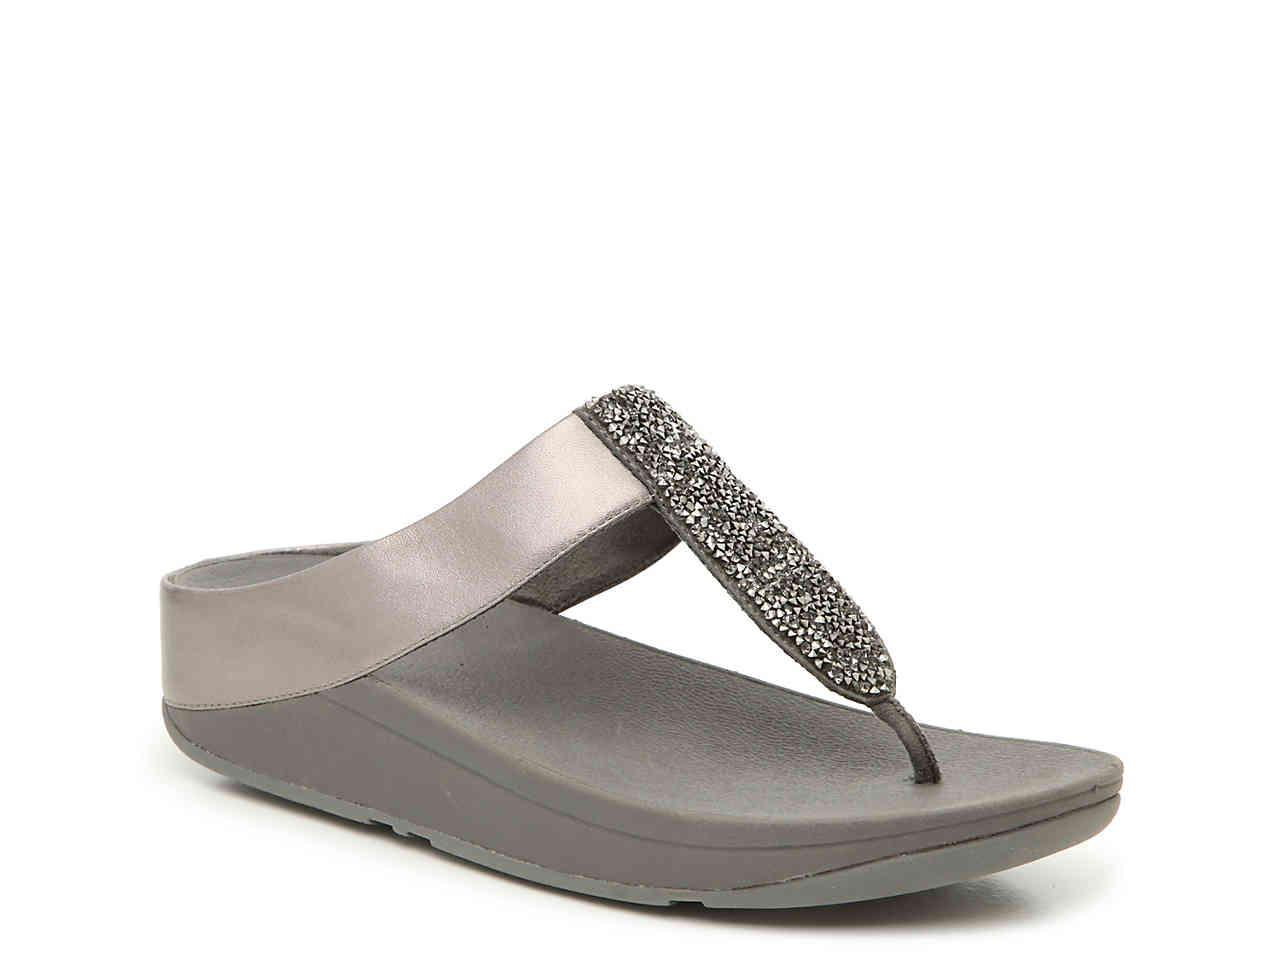 66edc8f30e0 Lyst - Fitflop Sparklie Crystal Wedge Sandal in Metallic